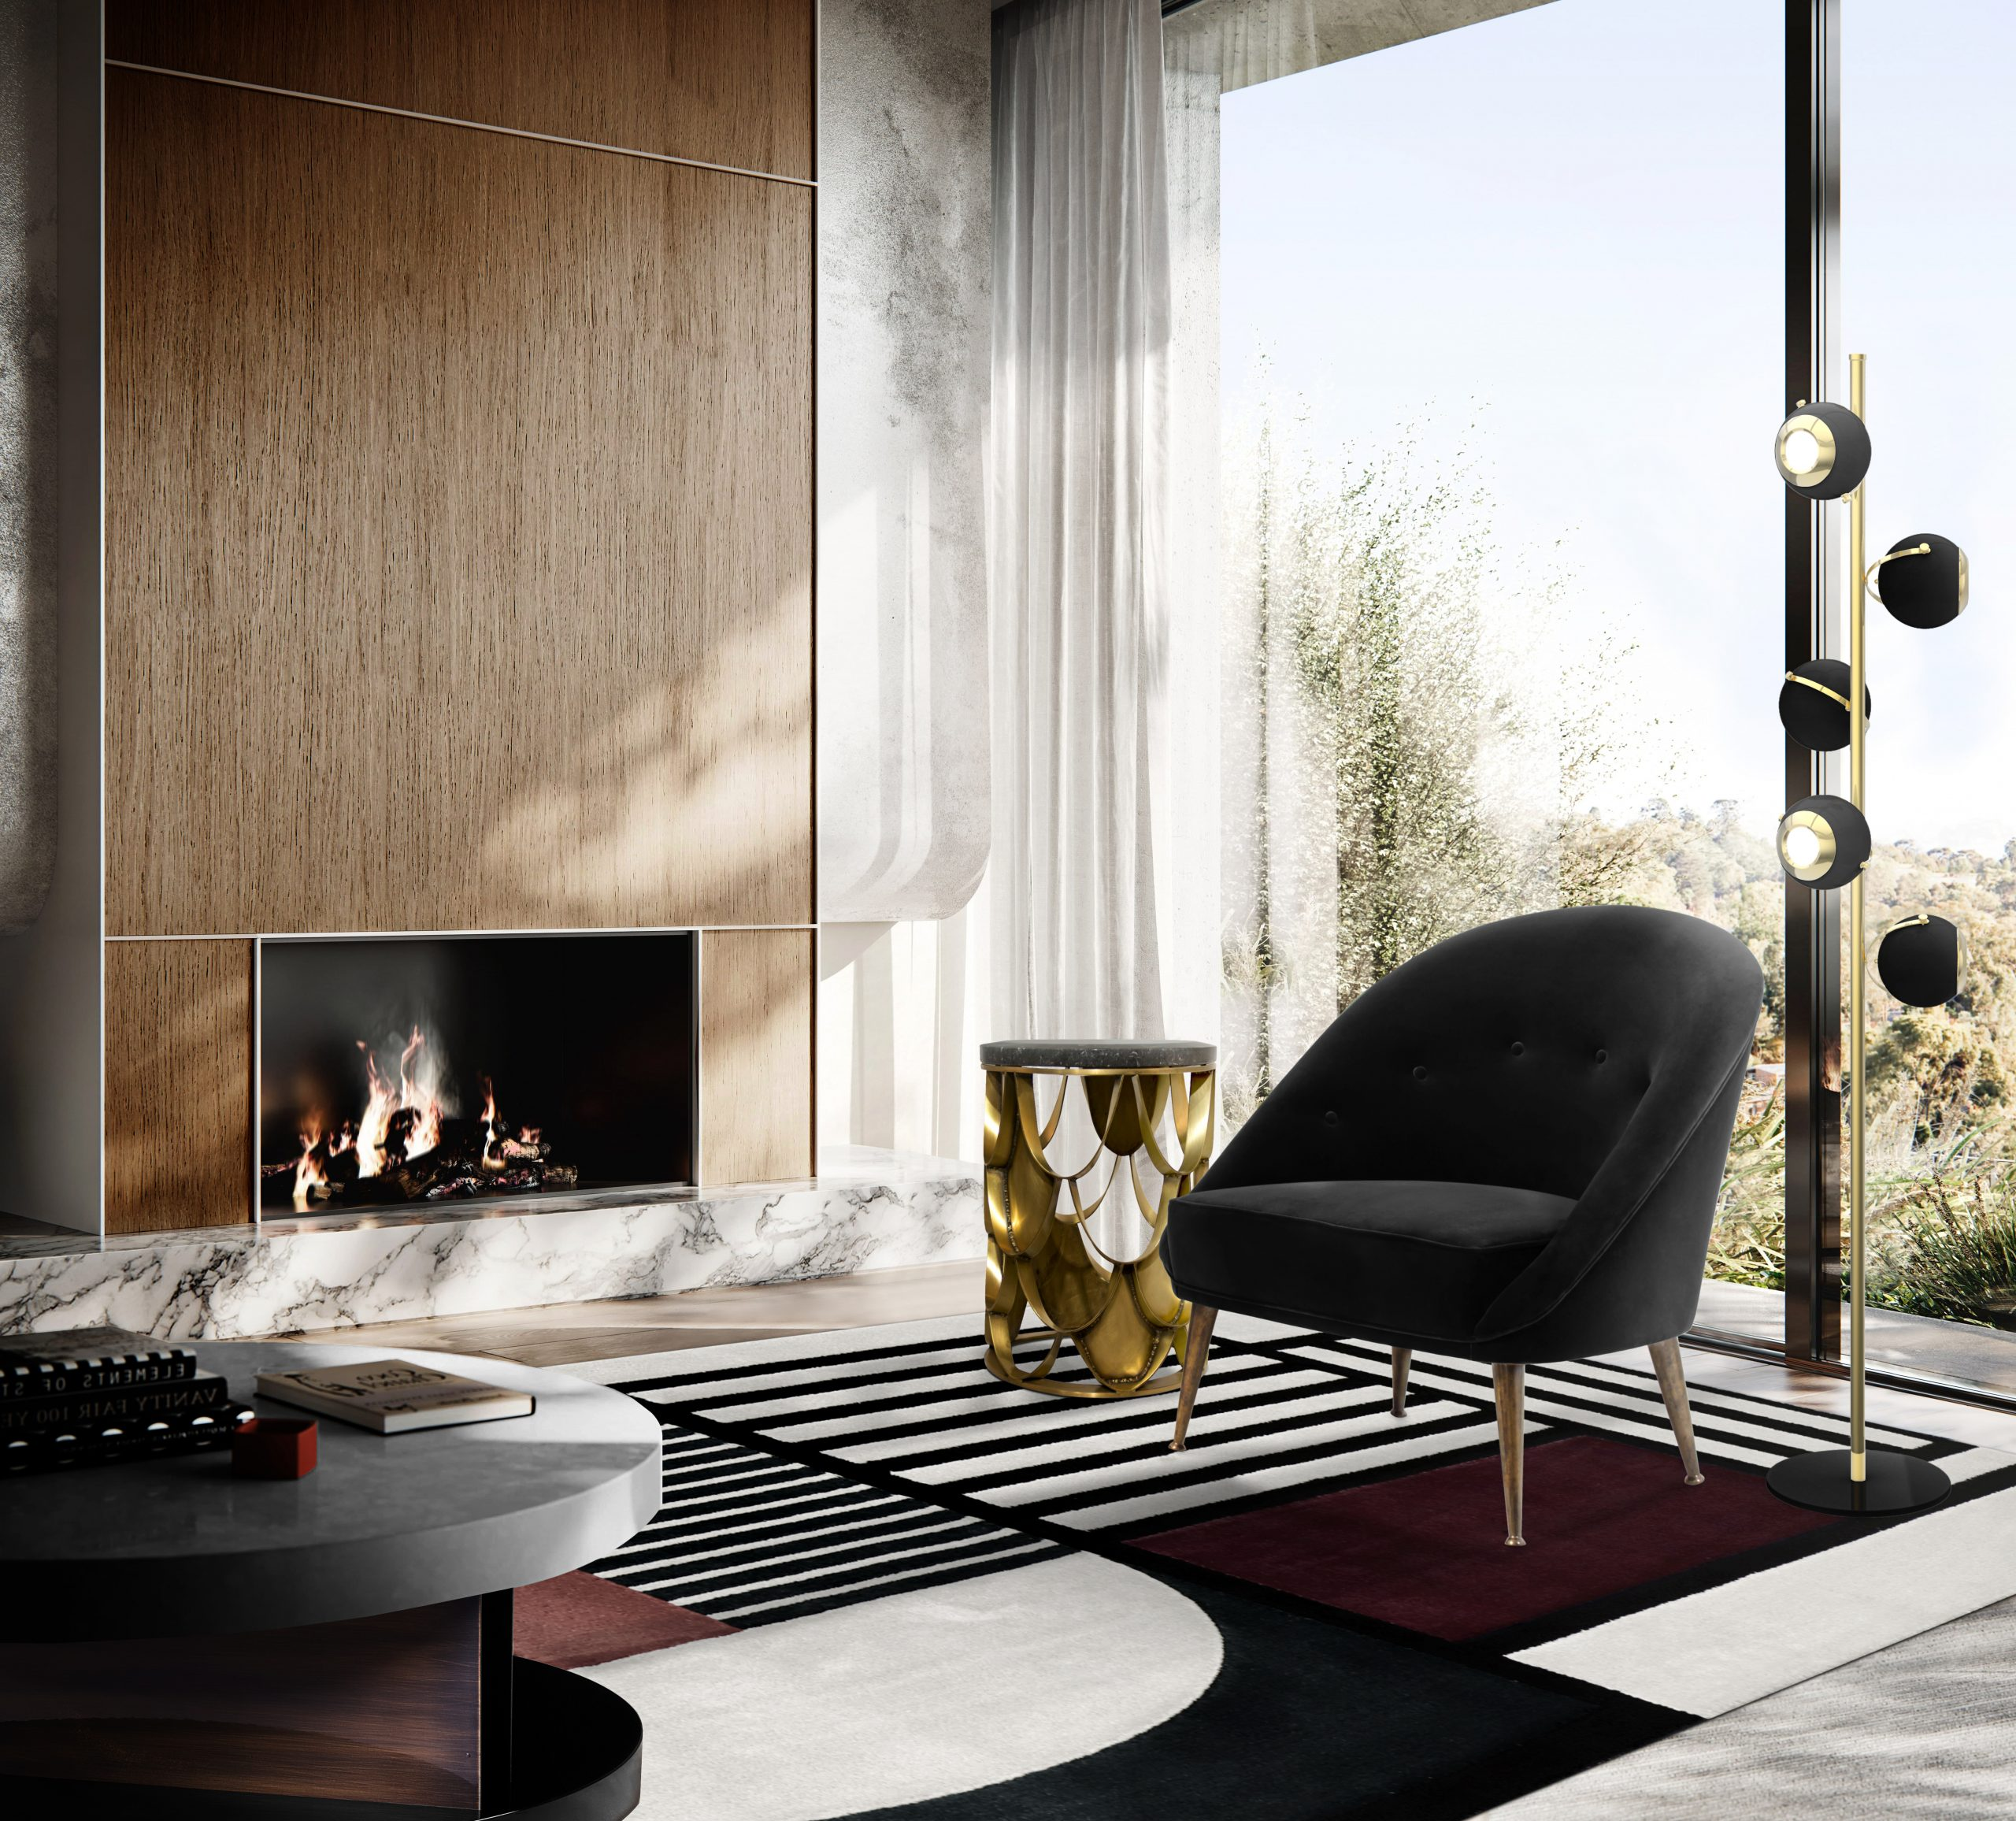 Modern Minimalist Design: Trendy Chairs That Perfectly Suit Your Minimalist Lifestyle modern minimalist Modern Minimalist Design: Chairs That Suit Your Minimalist Lifestyle Malay Armchair e Koi Side Table scaled